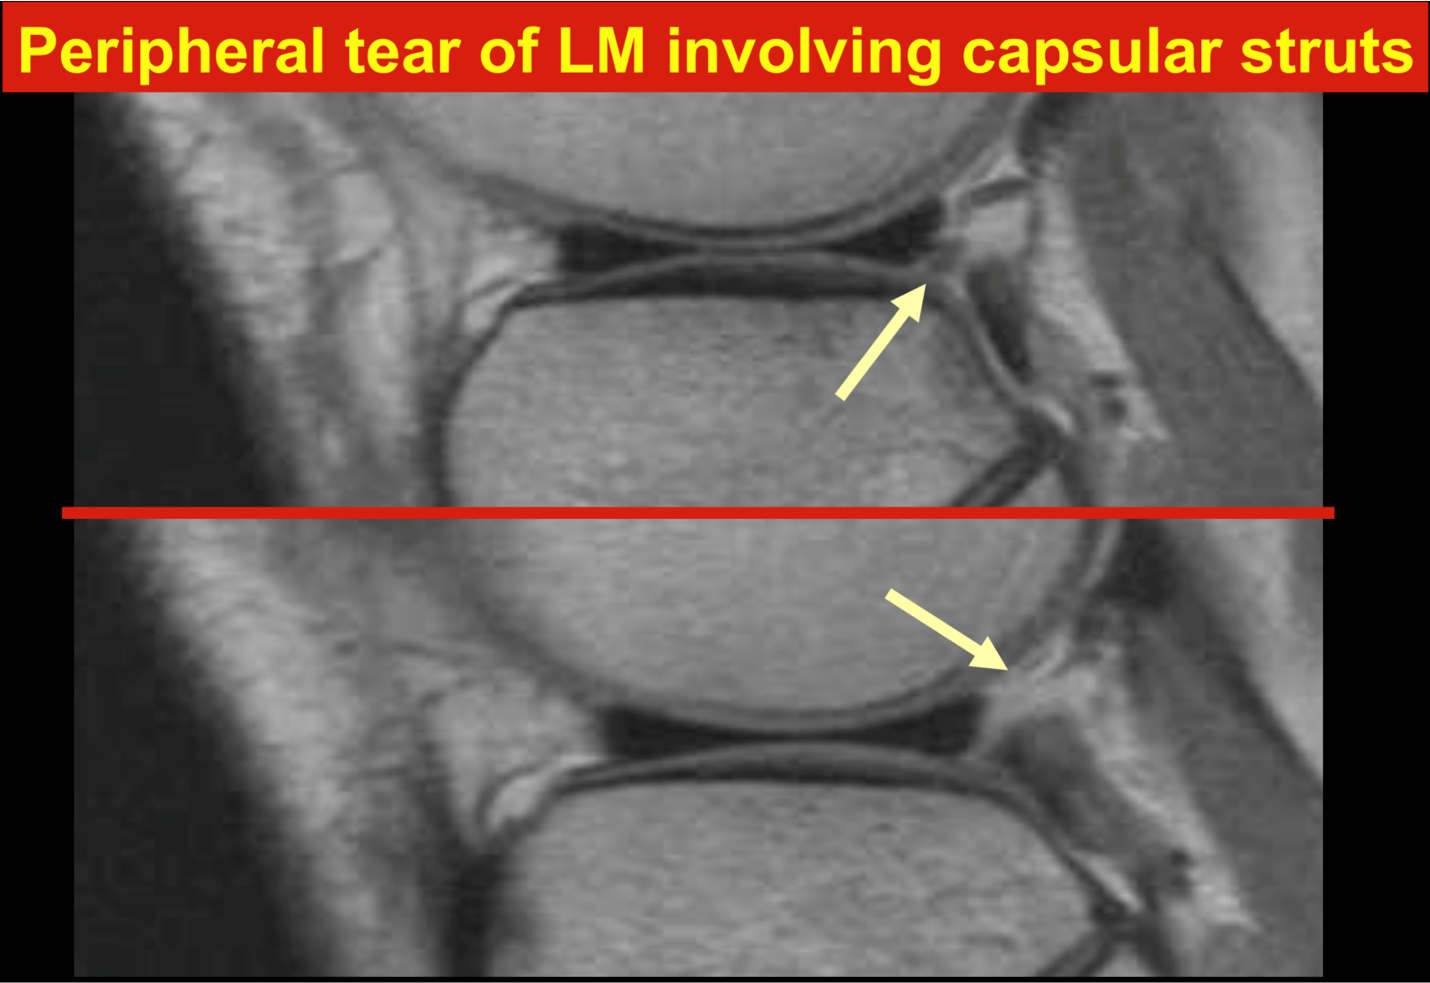 Peripheral tear of LM involving capsular struts